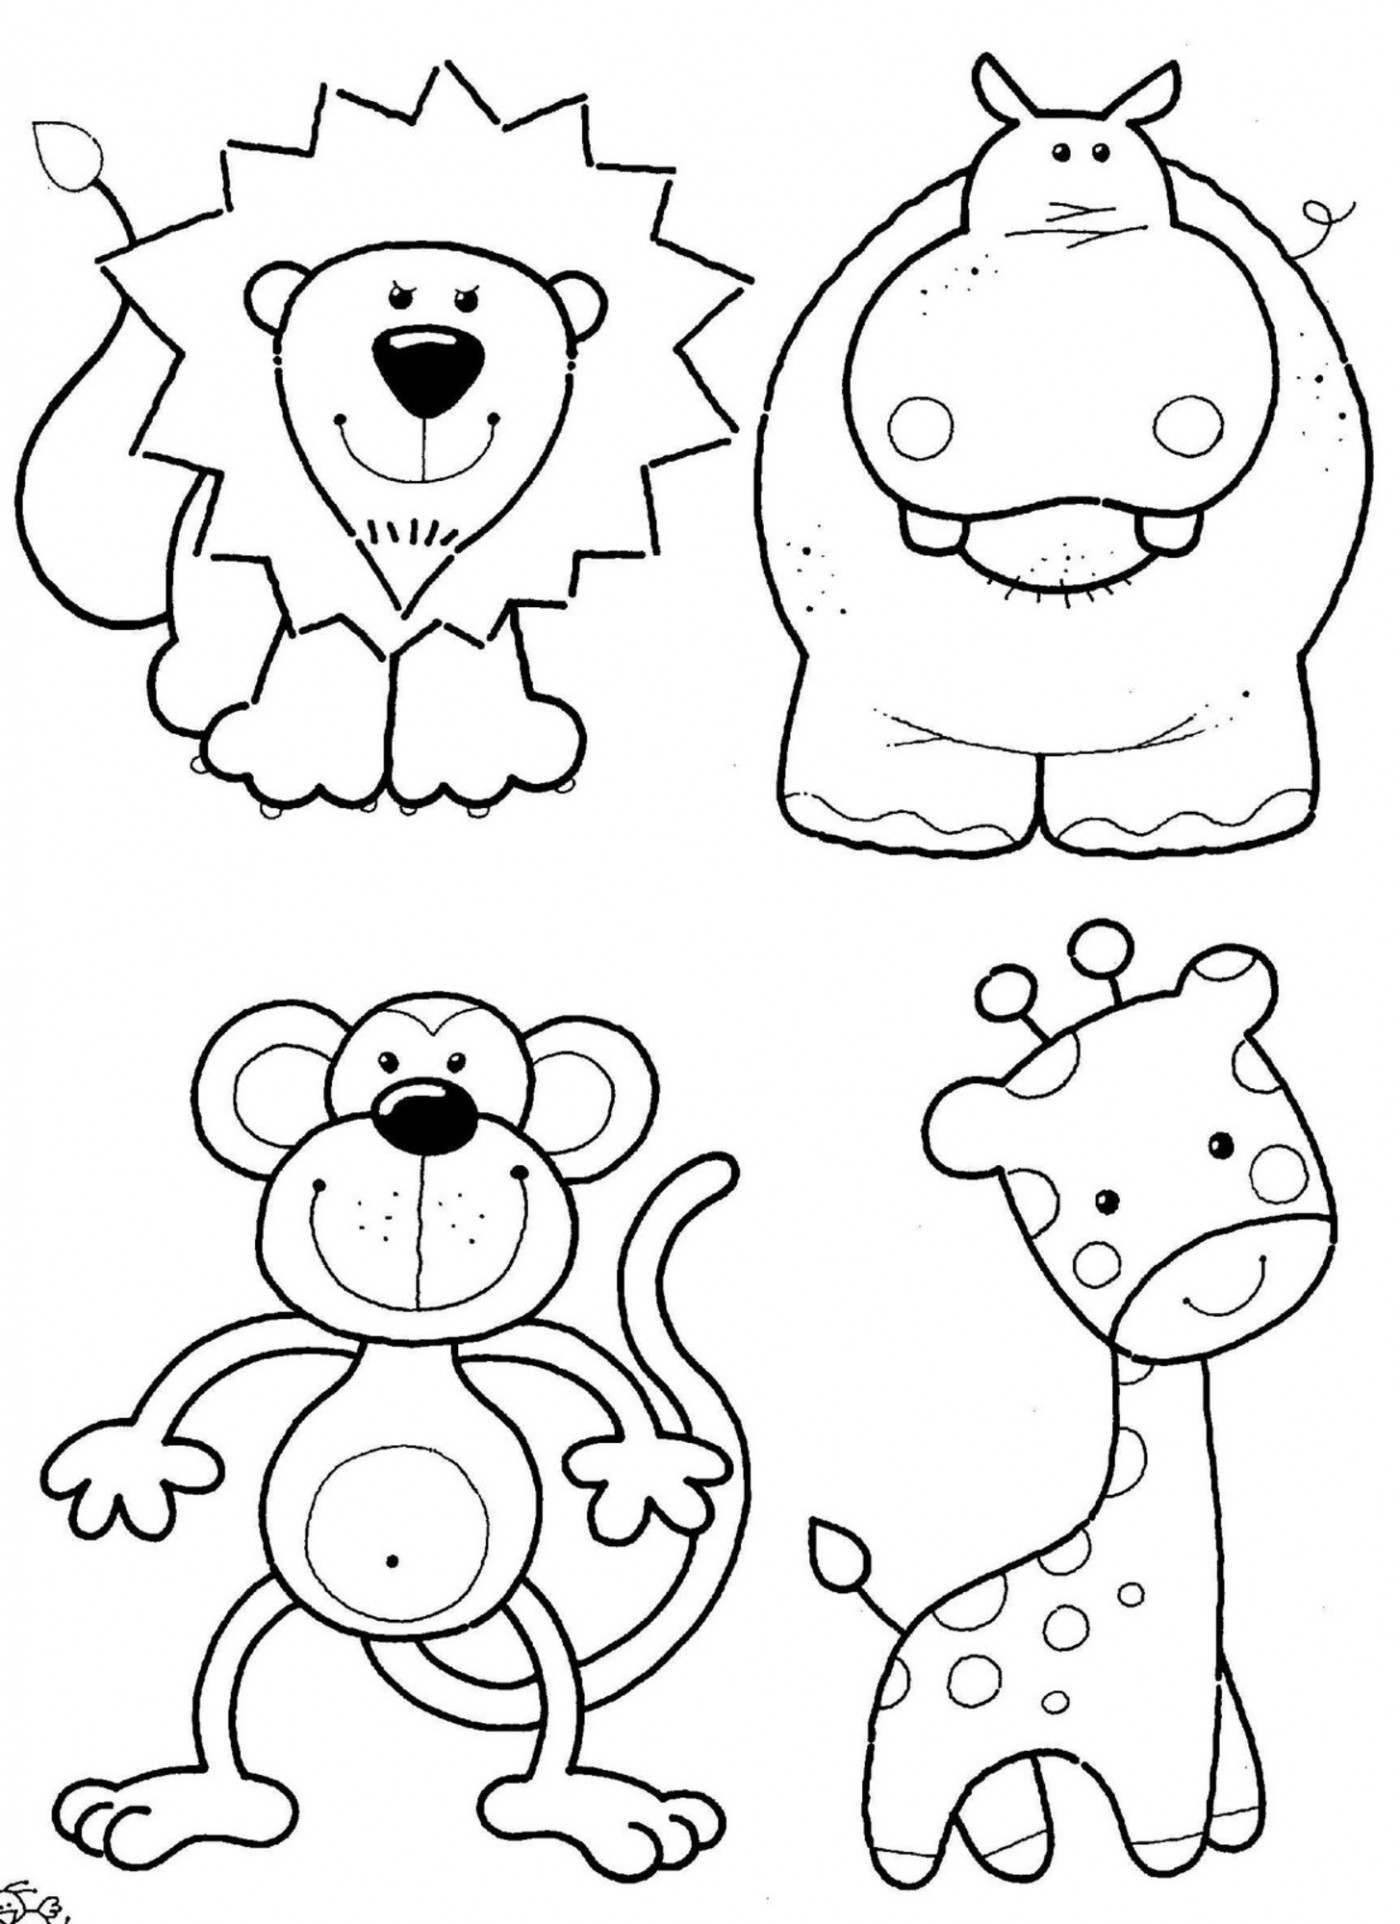 Animal coloring pages 14 coloring kids for Animals coloring page